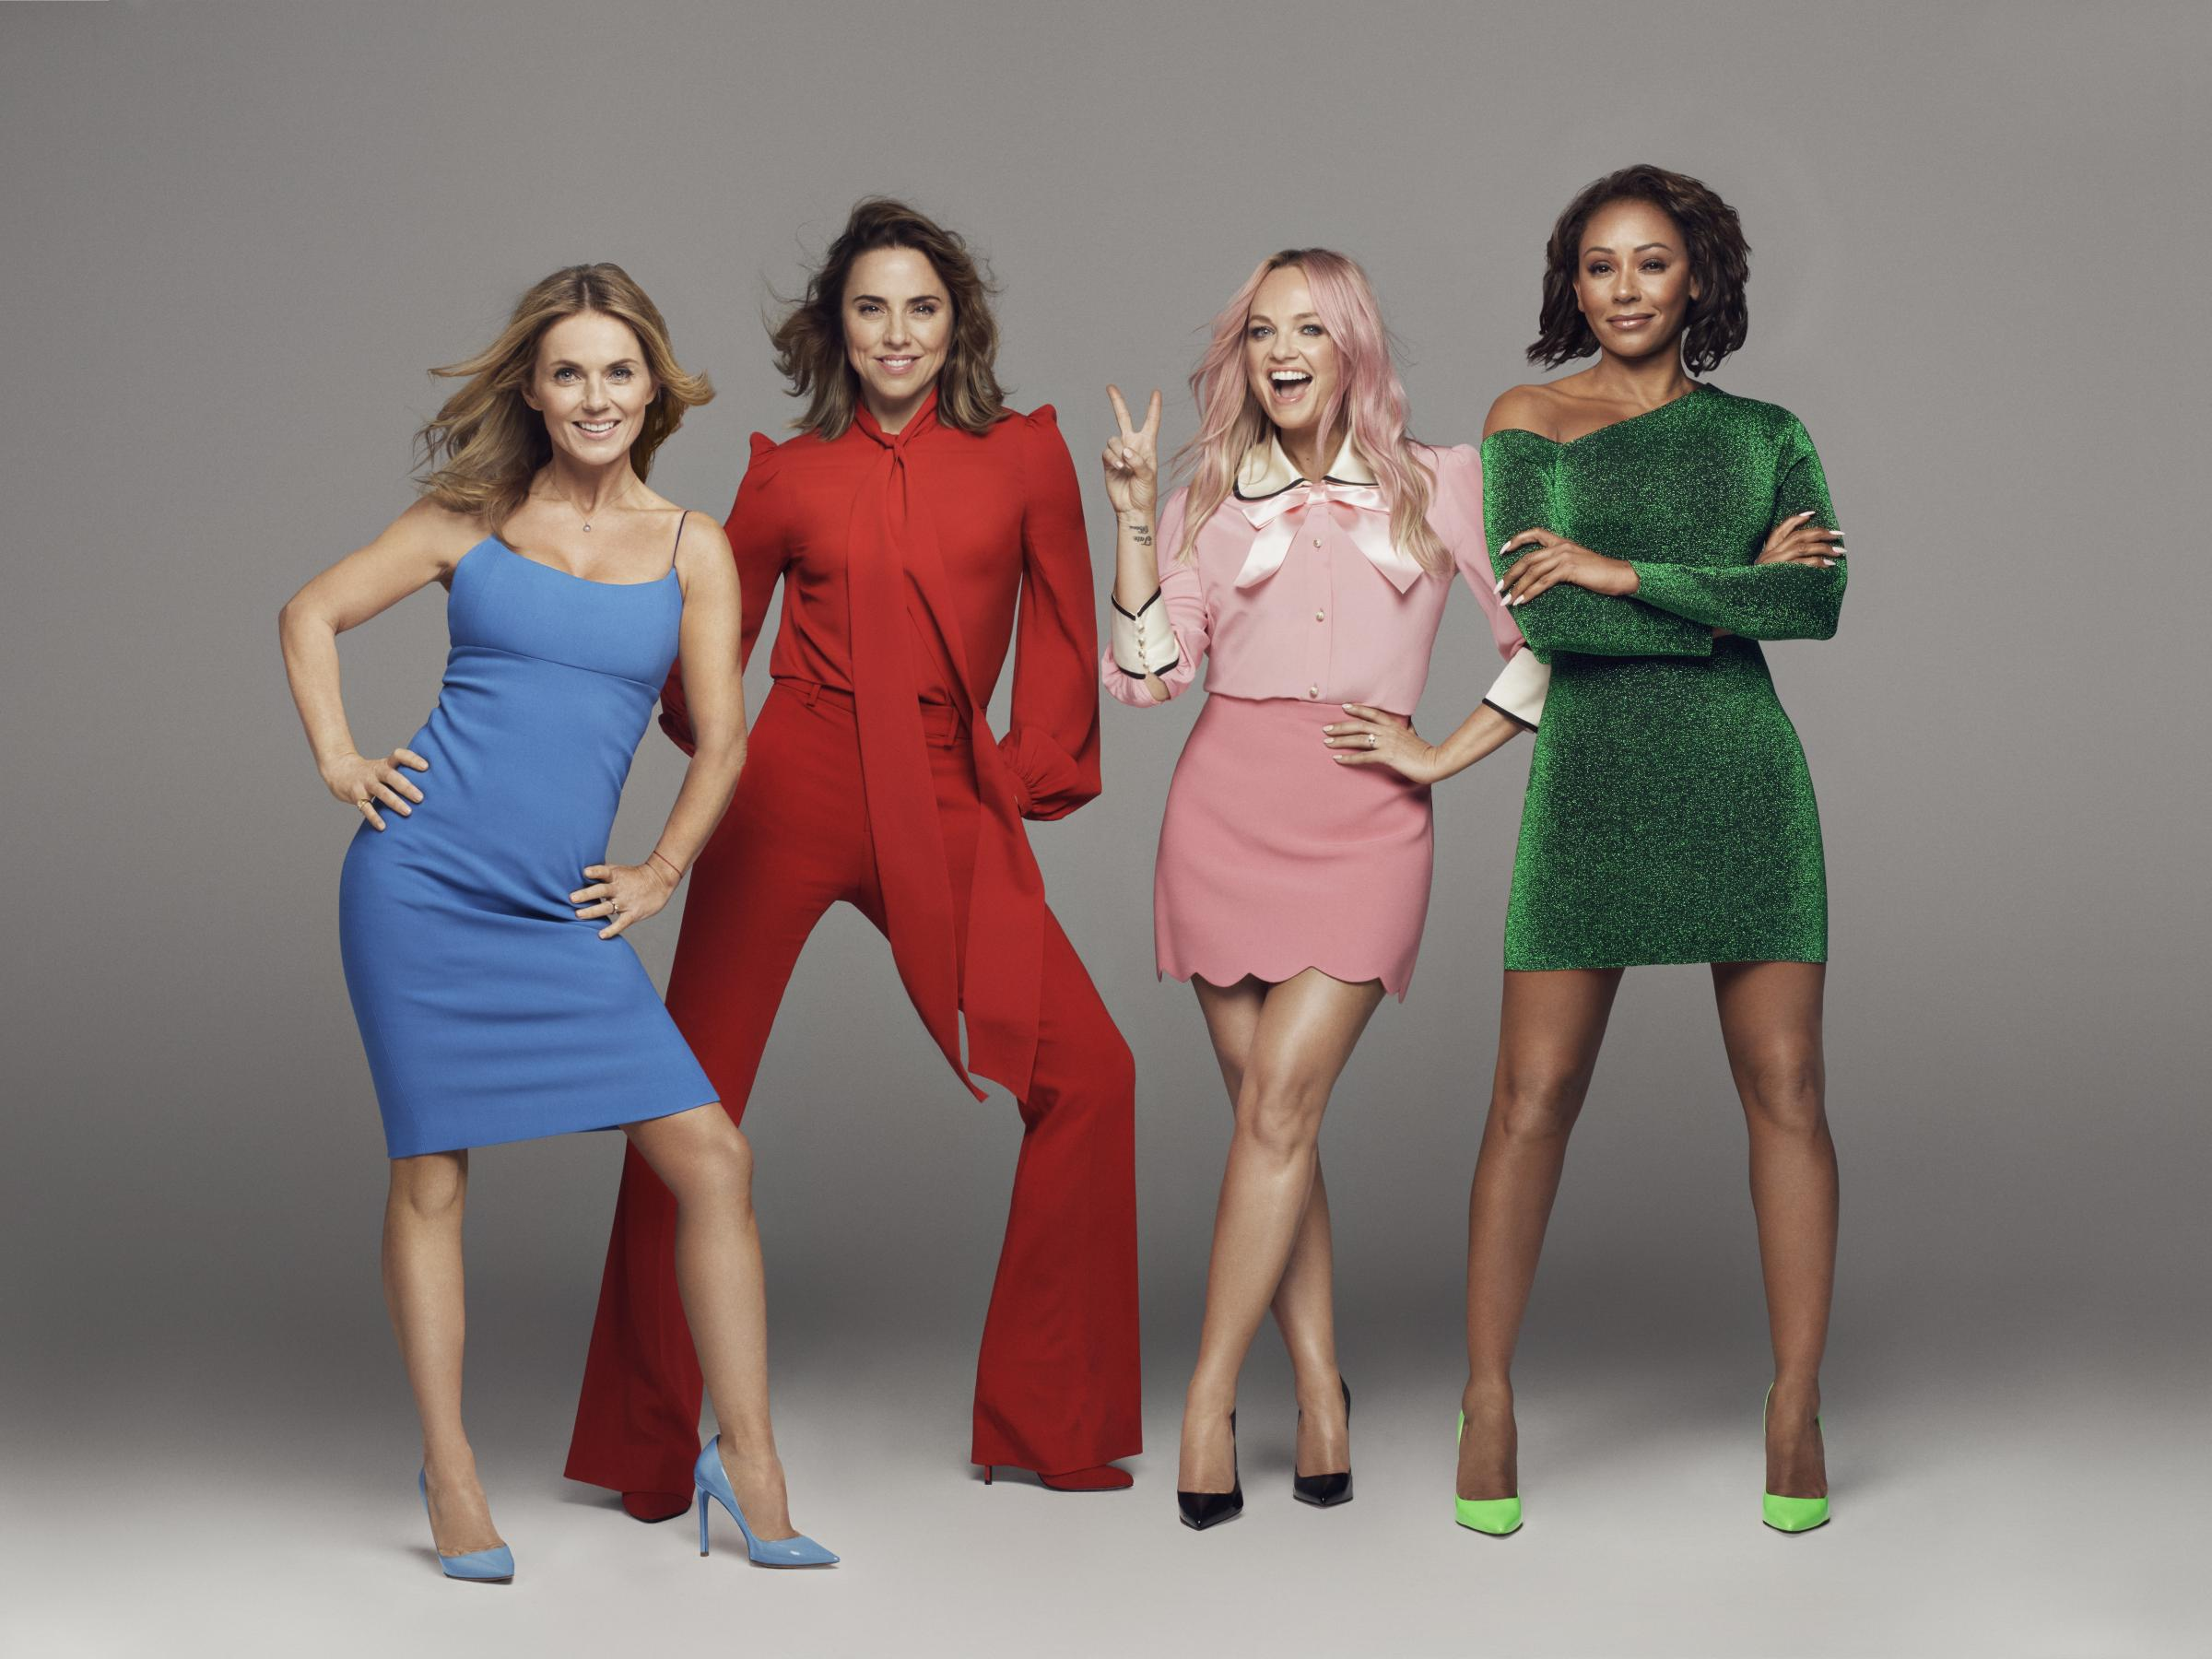 Could you be a dancer for the Spice Girls?